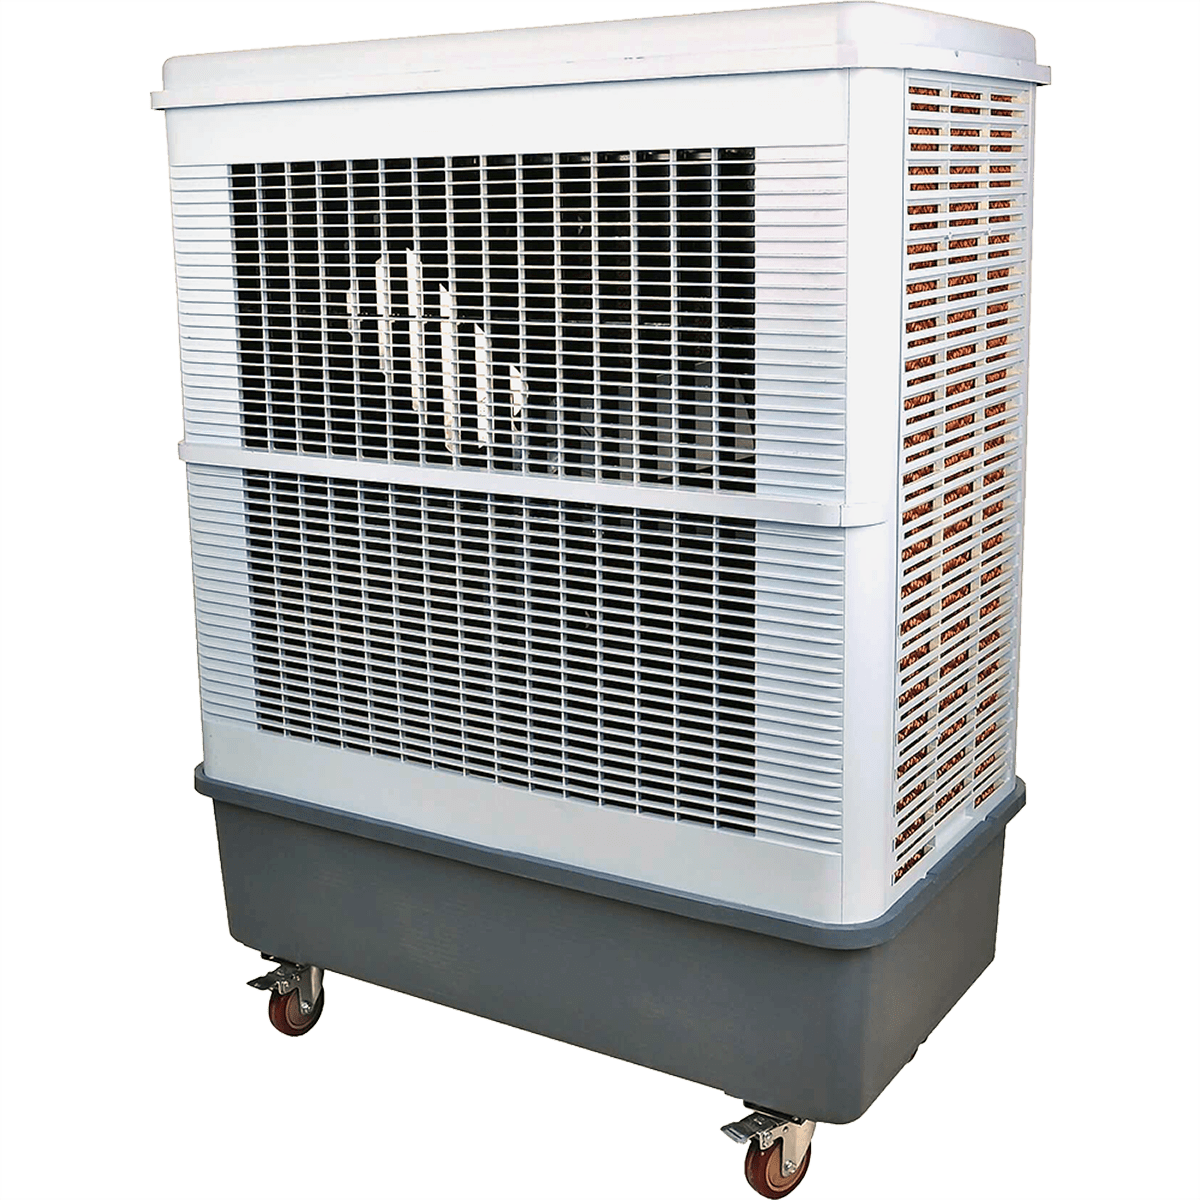 Hessaire MFC18000 8,500 CFM 2-Speed Portable Evaporative Cooler he5455